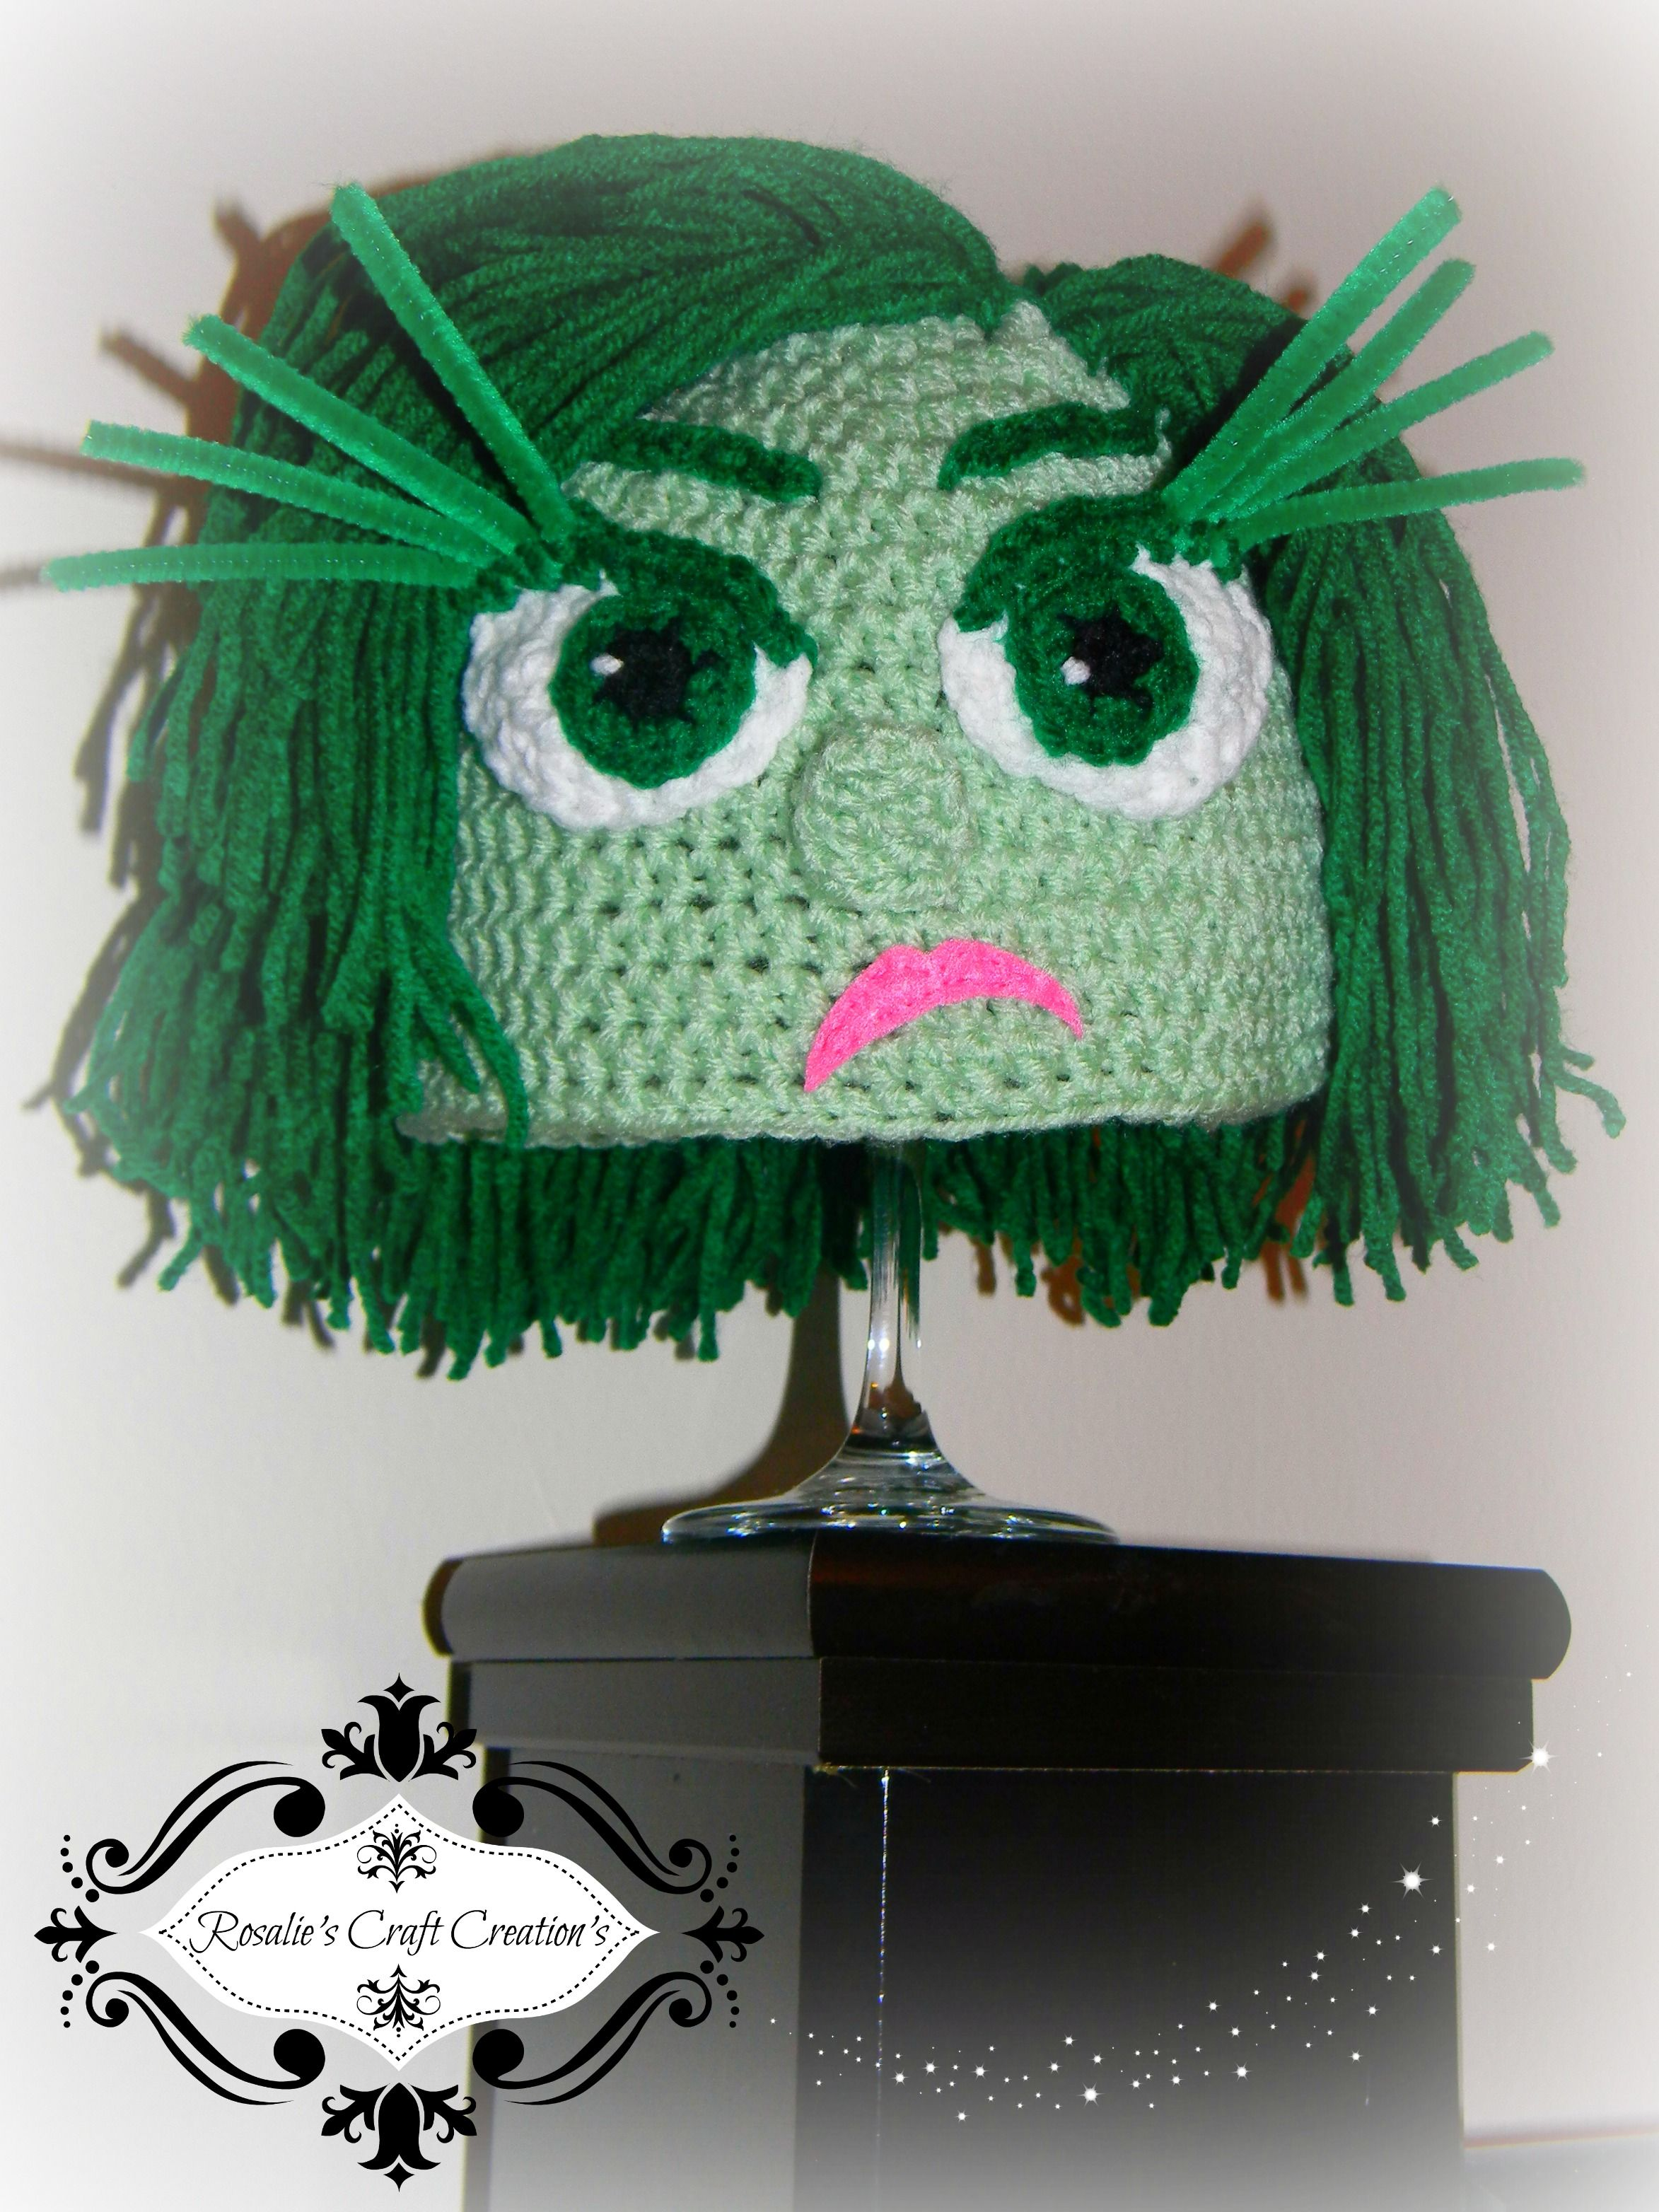 Crochet Hat Disgust from inside out | Crochet hat patterns ...